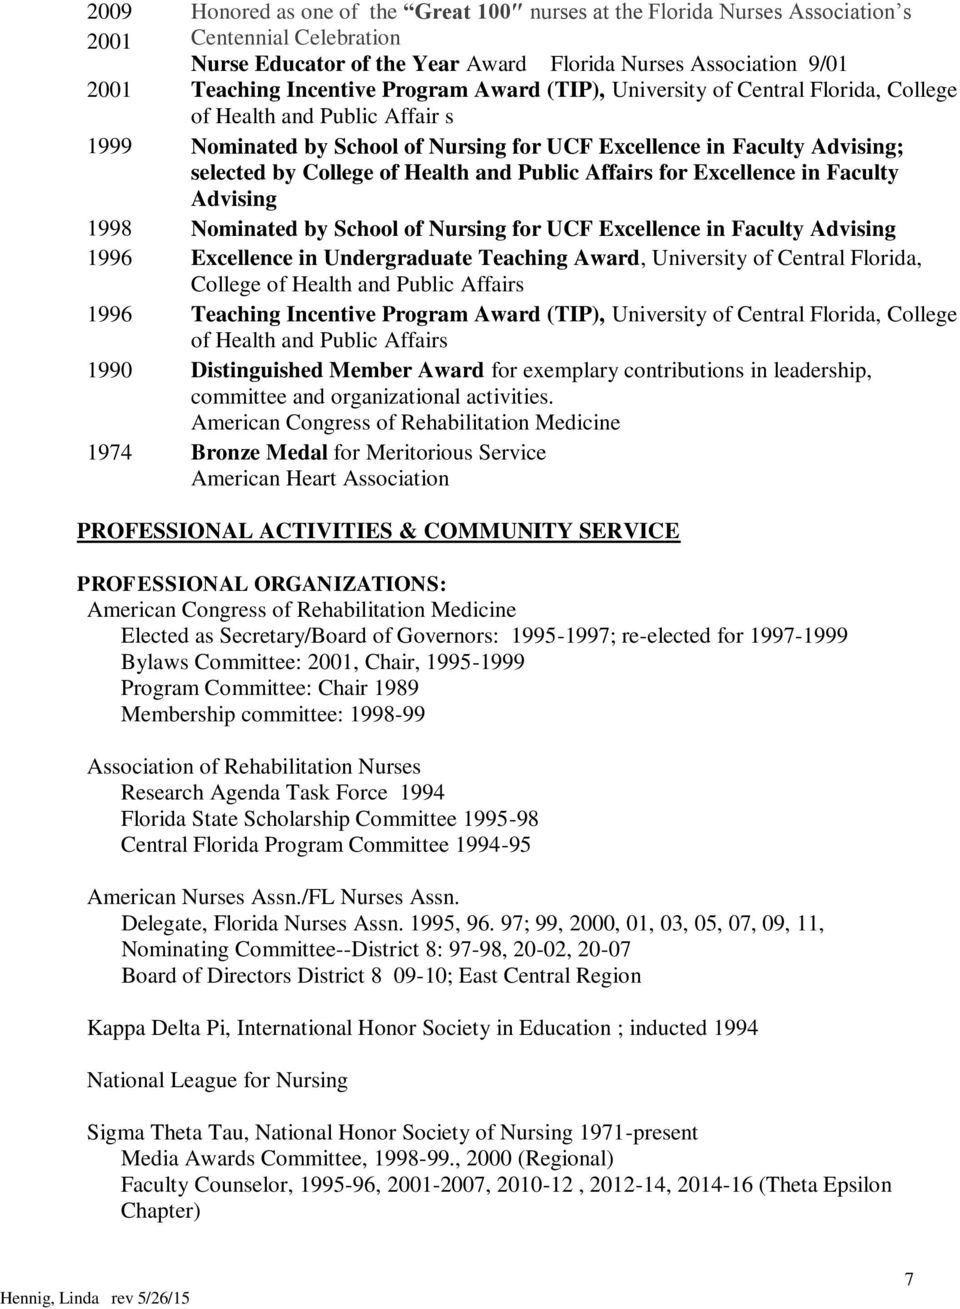 Public Affairs for Excellence in Faculty Advising 1998 Nominated by School of Nursing for UCF Excellence in Faculty Advising 1996 Excellence in Undergraduate Teaching Award, University of Central